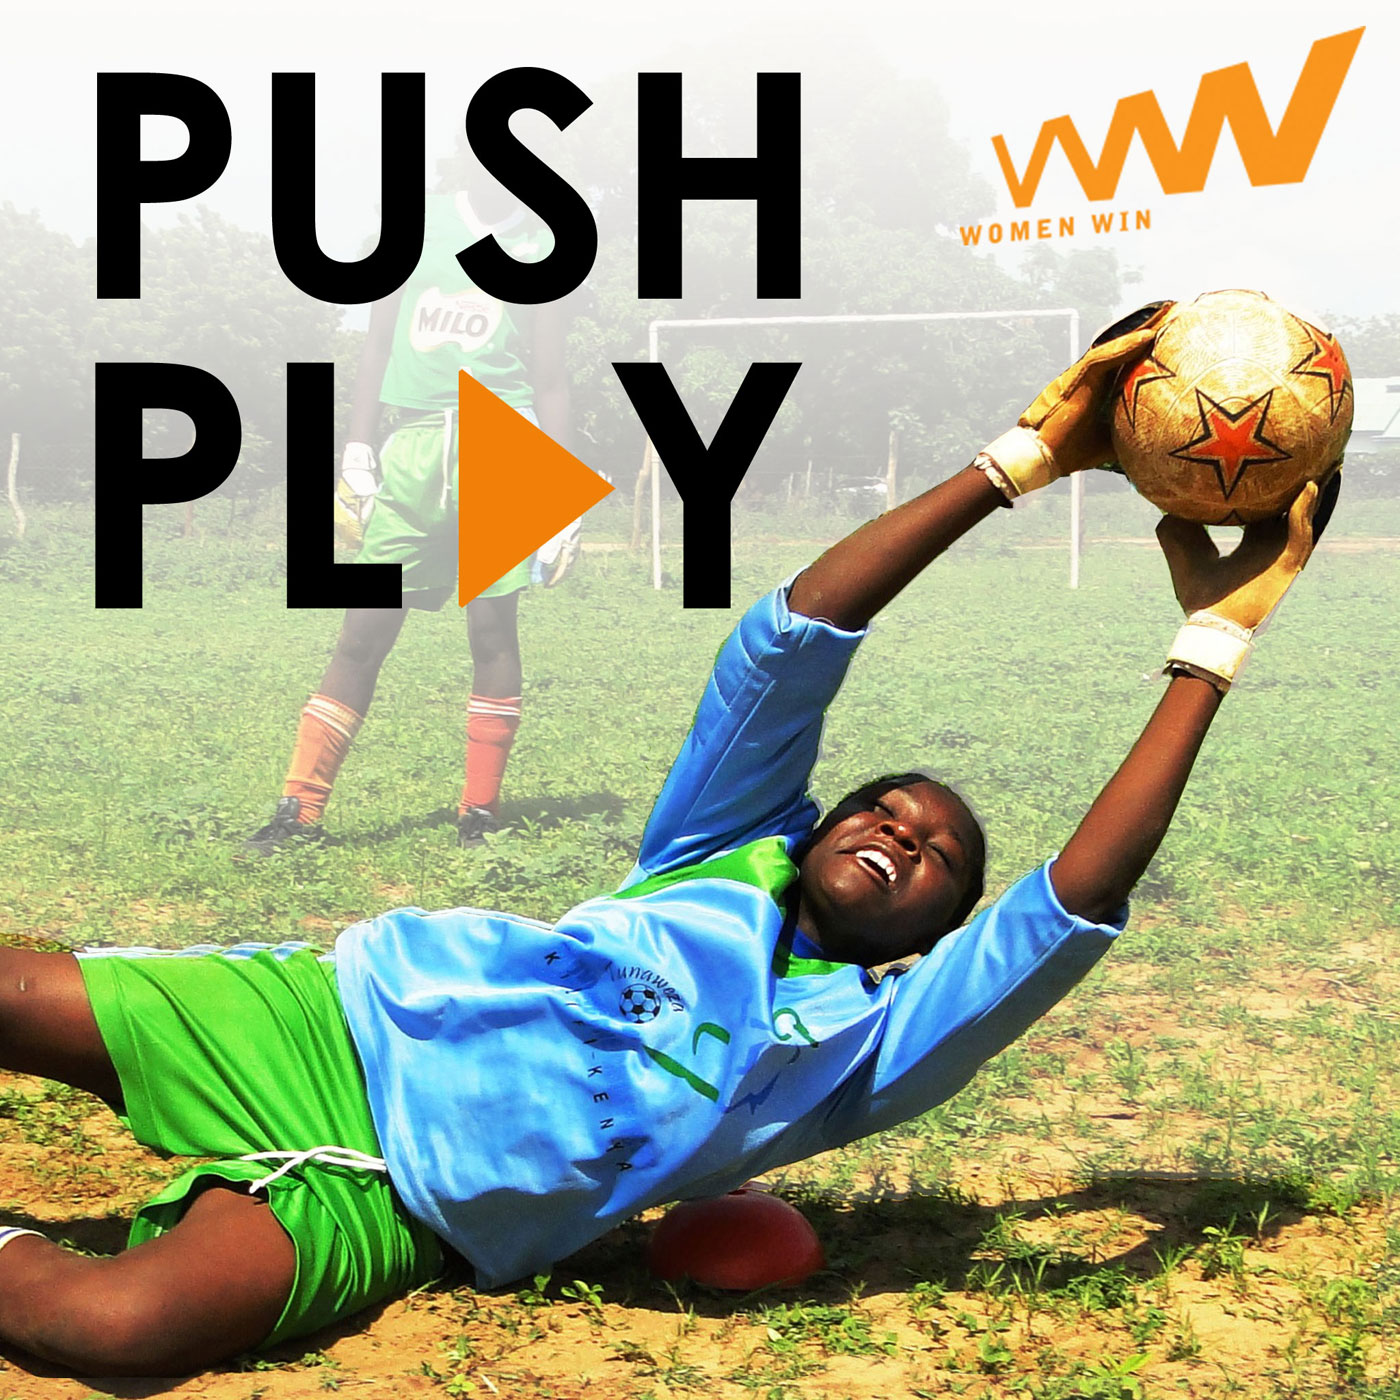 Push Play: Young women's stories of sport and real life